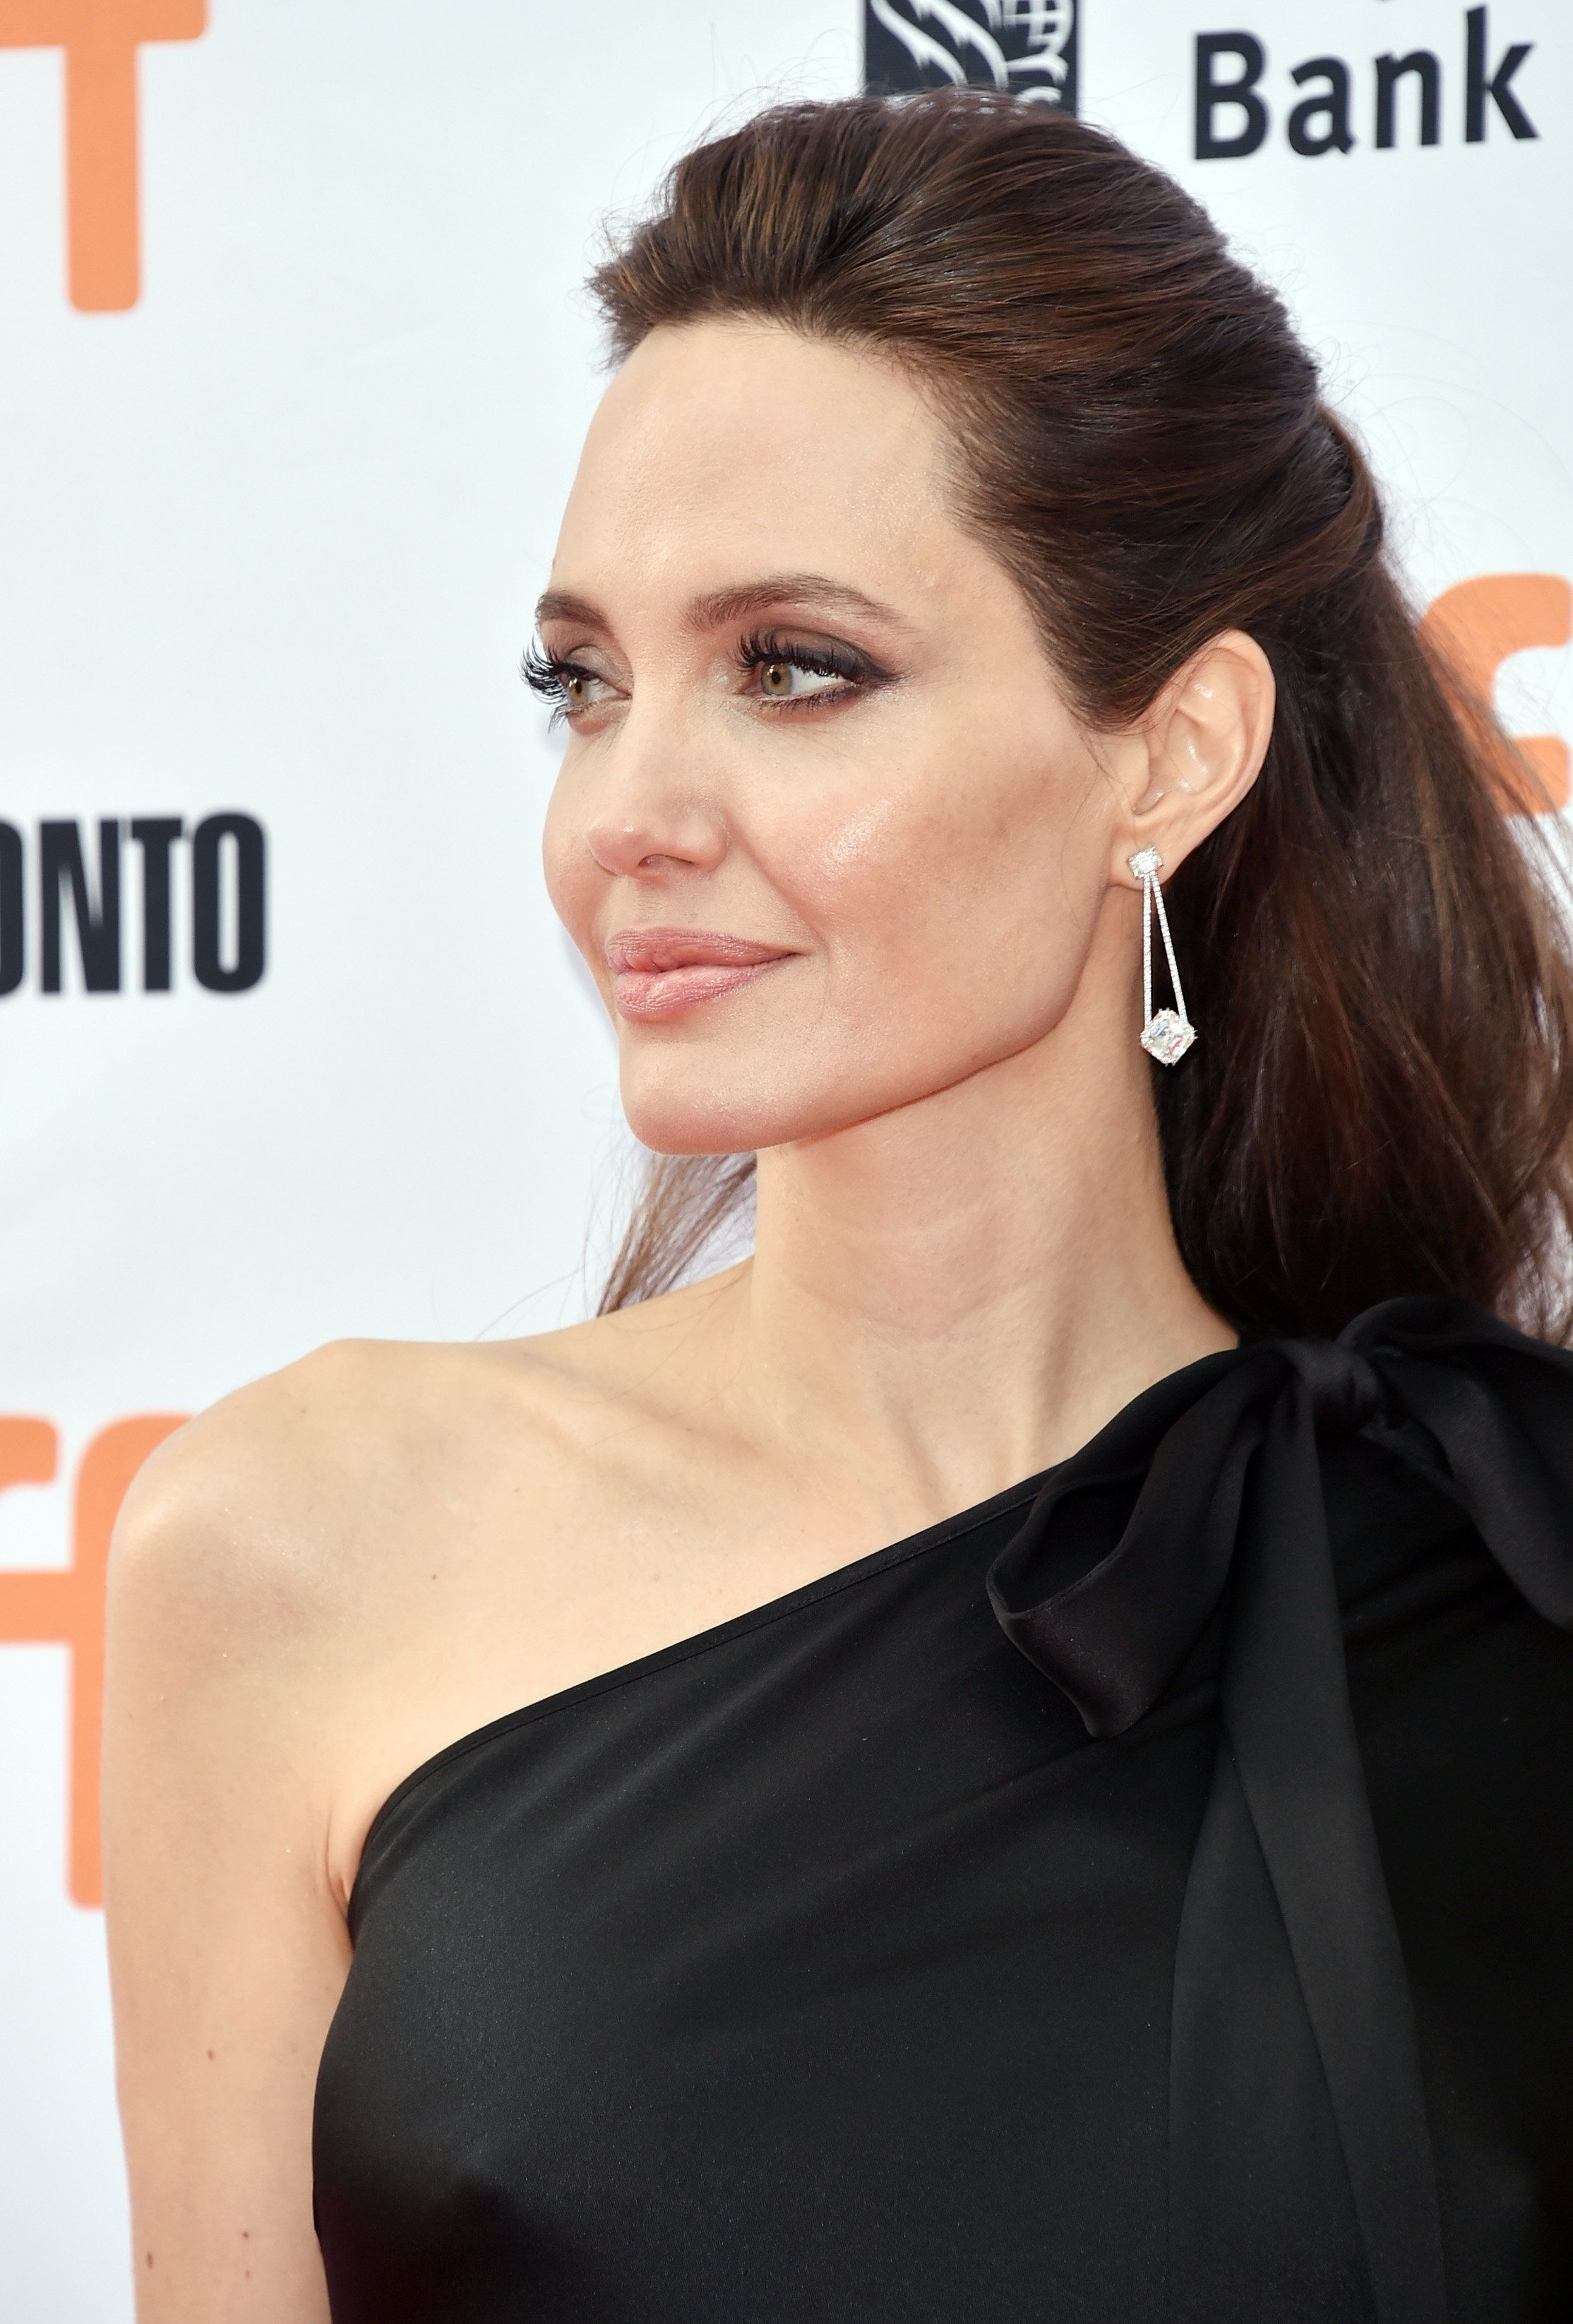 TORONTO, ON - SEPTEMBER 11:  Angelina Jolie attends the 'First They Killed My Father' premiere during the 2017 Toronto International Film Festival at Princess of Wales Theatre on September 11, 2017 in Toronto, Canada.  (Photo by Alberto E. Rodriguez/Getty Images)